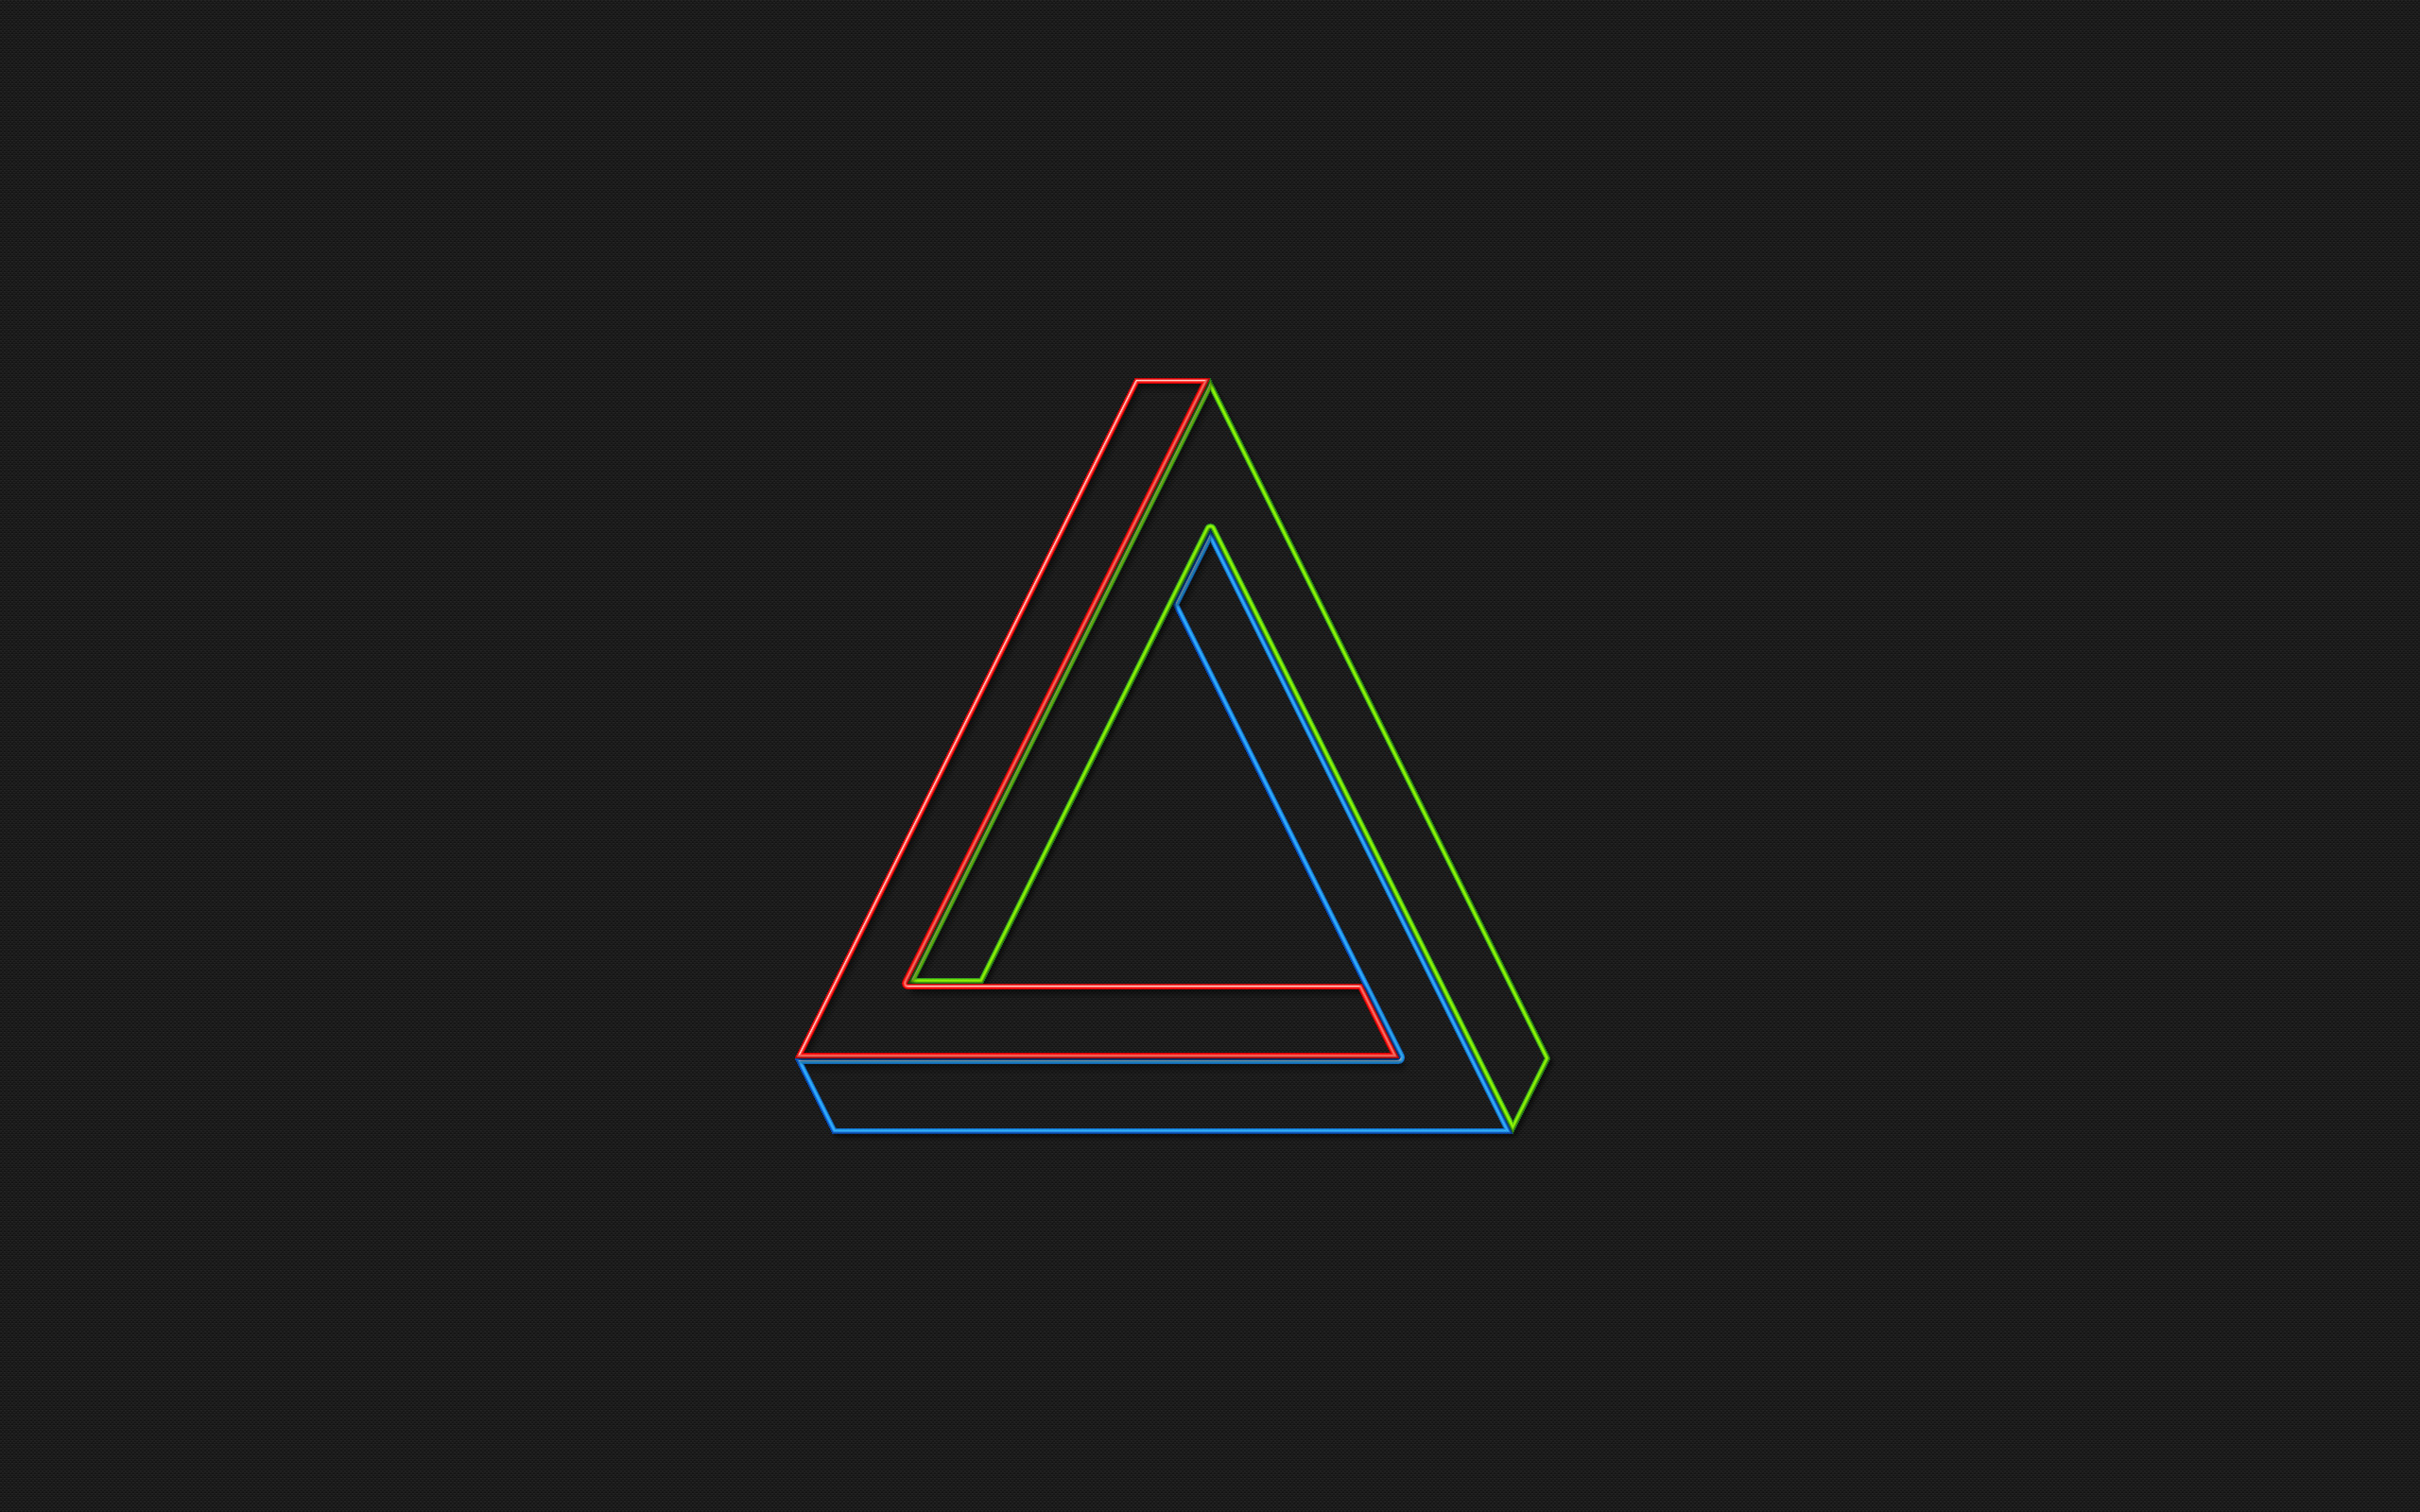 The impossible triangle wallpaper | 2560x1600 | 3473 ...